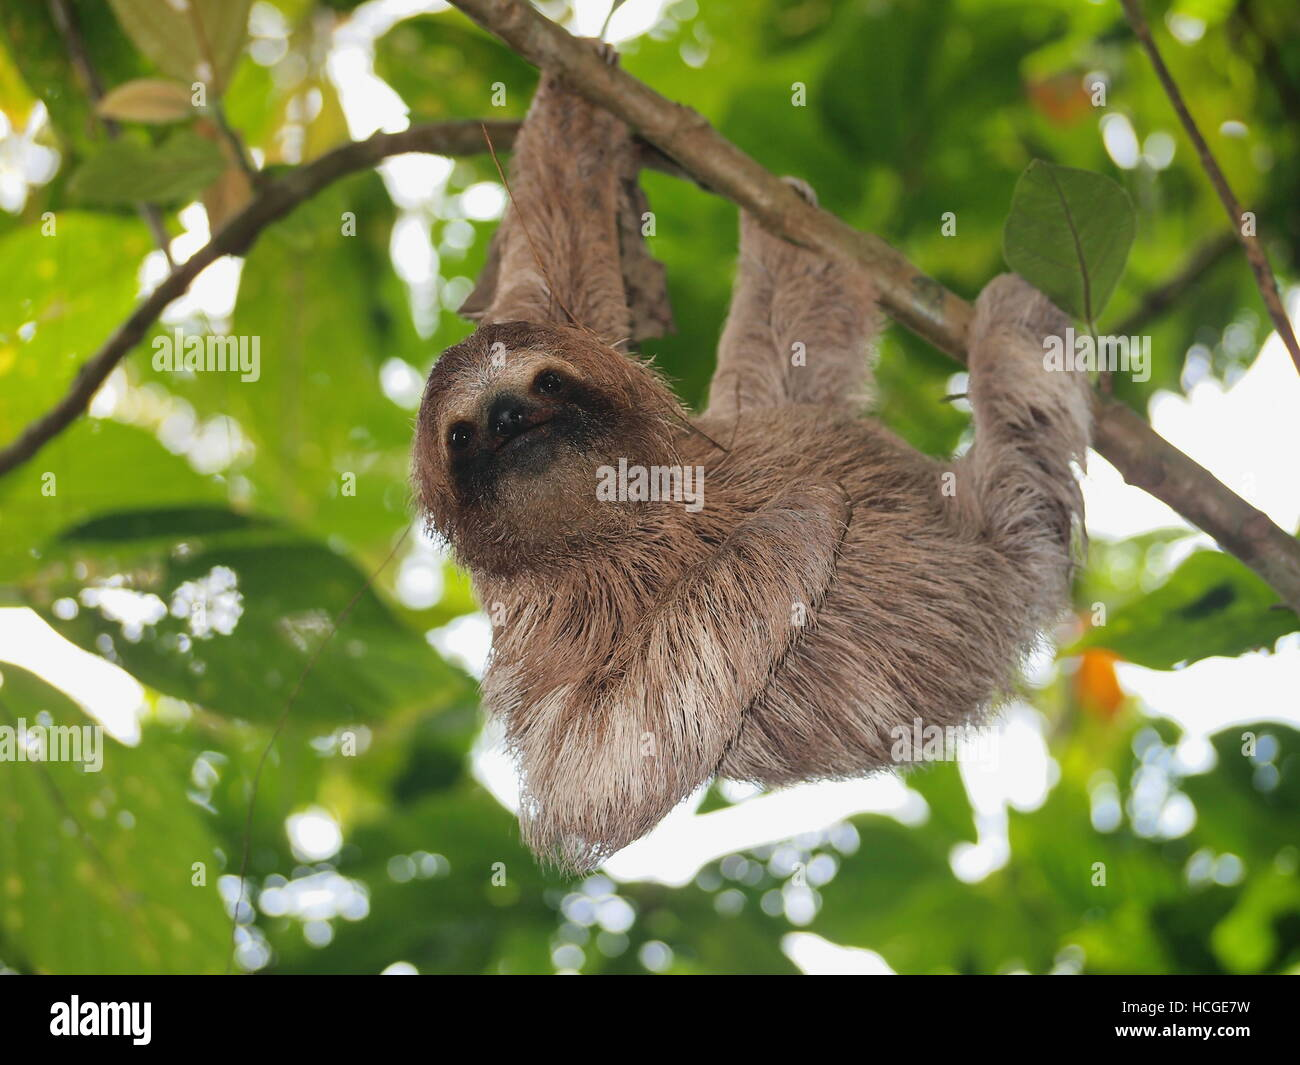 Cute sloth, Bradypus variegatus, hanging from a branch in the forest, wild animal, Panama, Central America - Stock Image